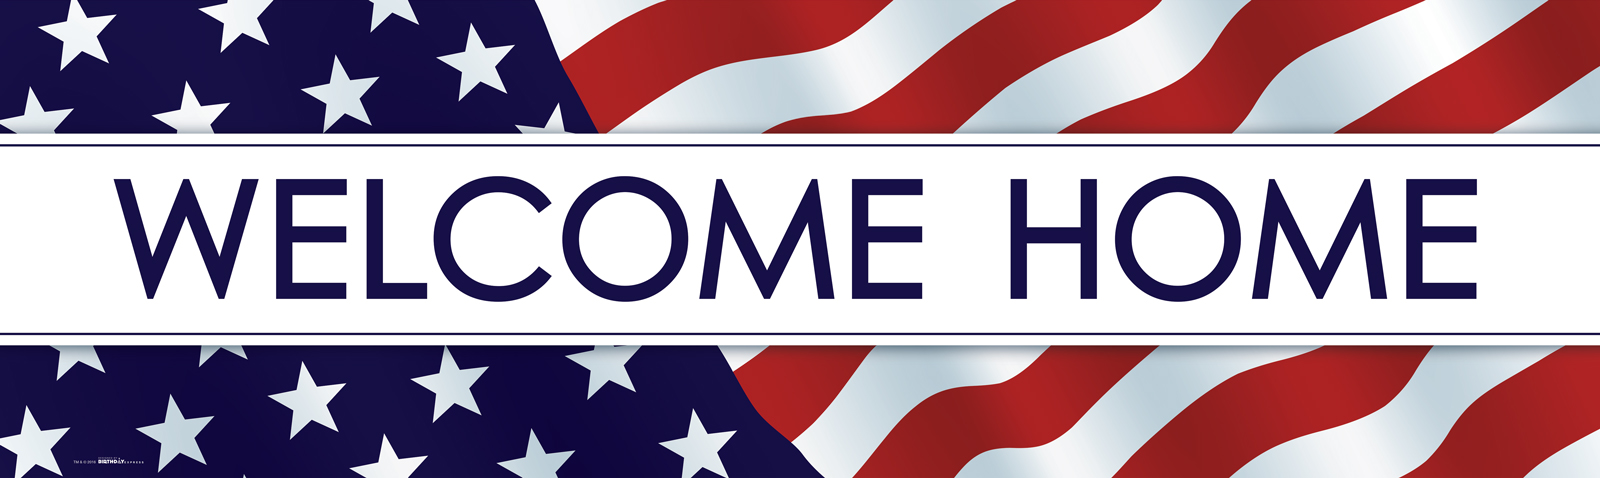 welcome home clipart cliparts galleries